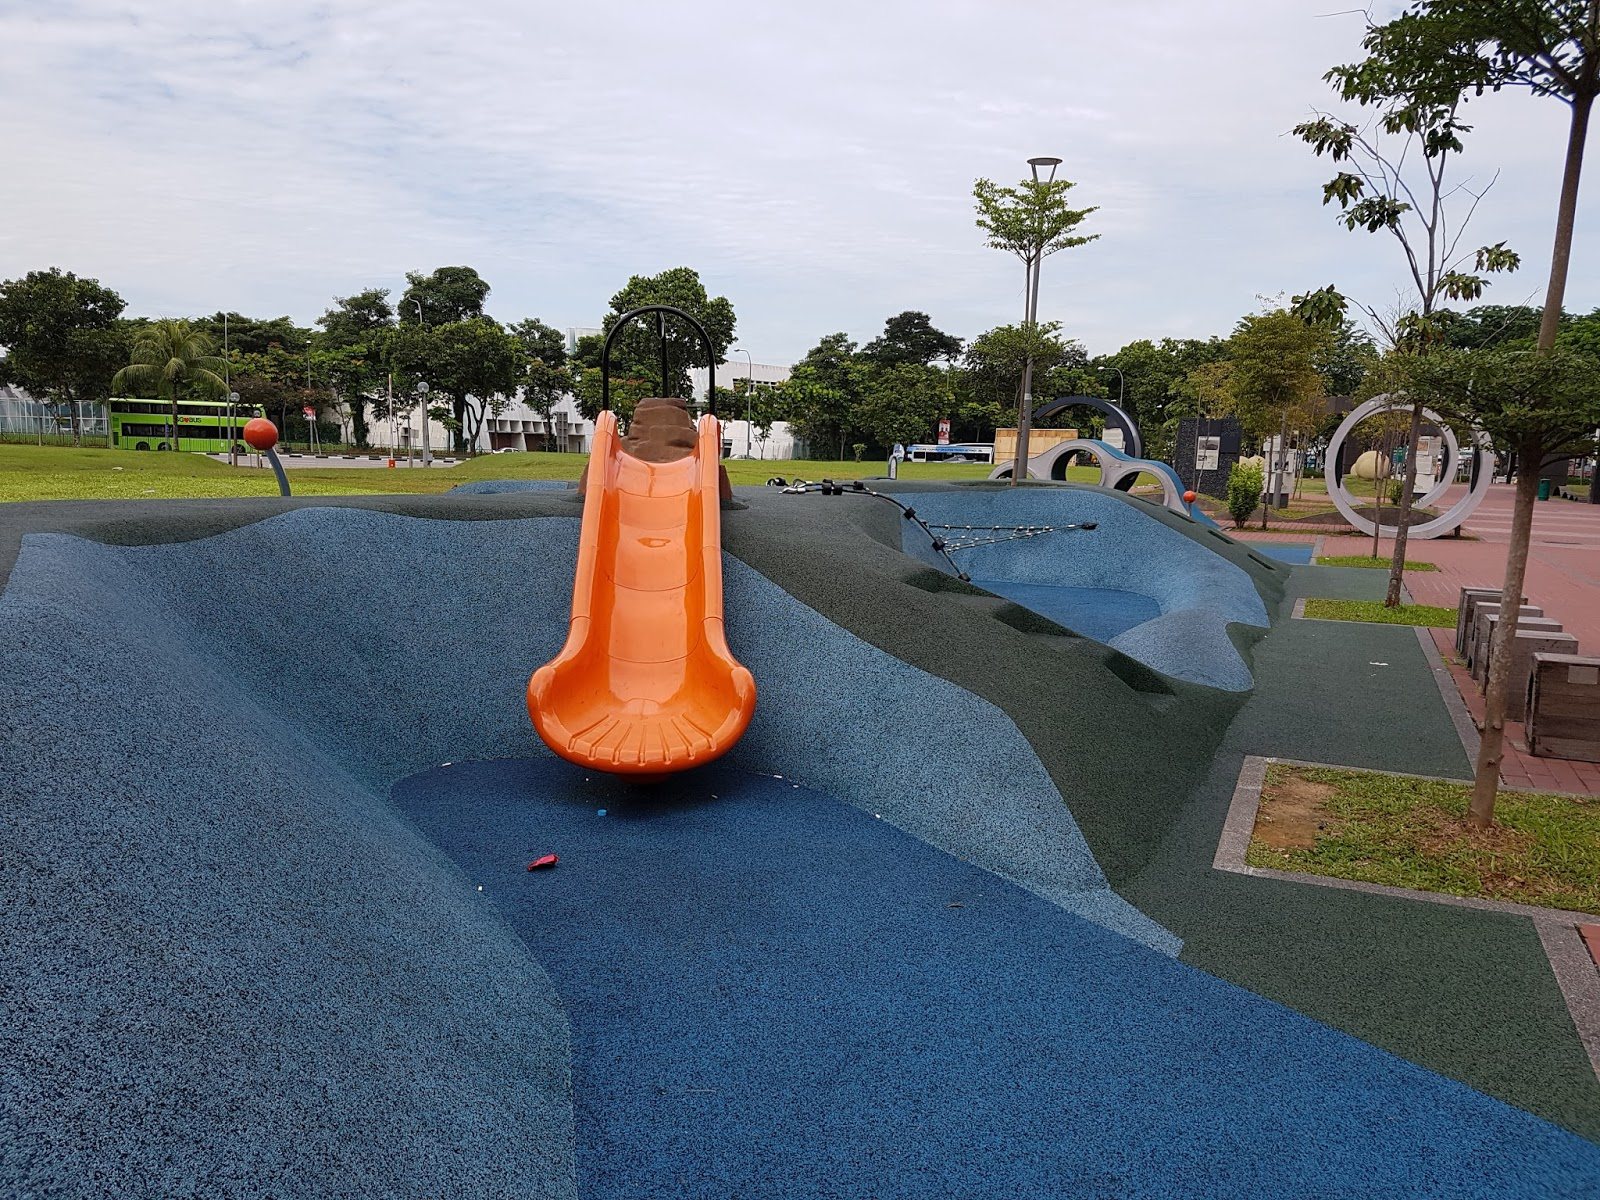 Kids Playgrounds Singapore West playgrounds